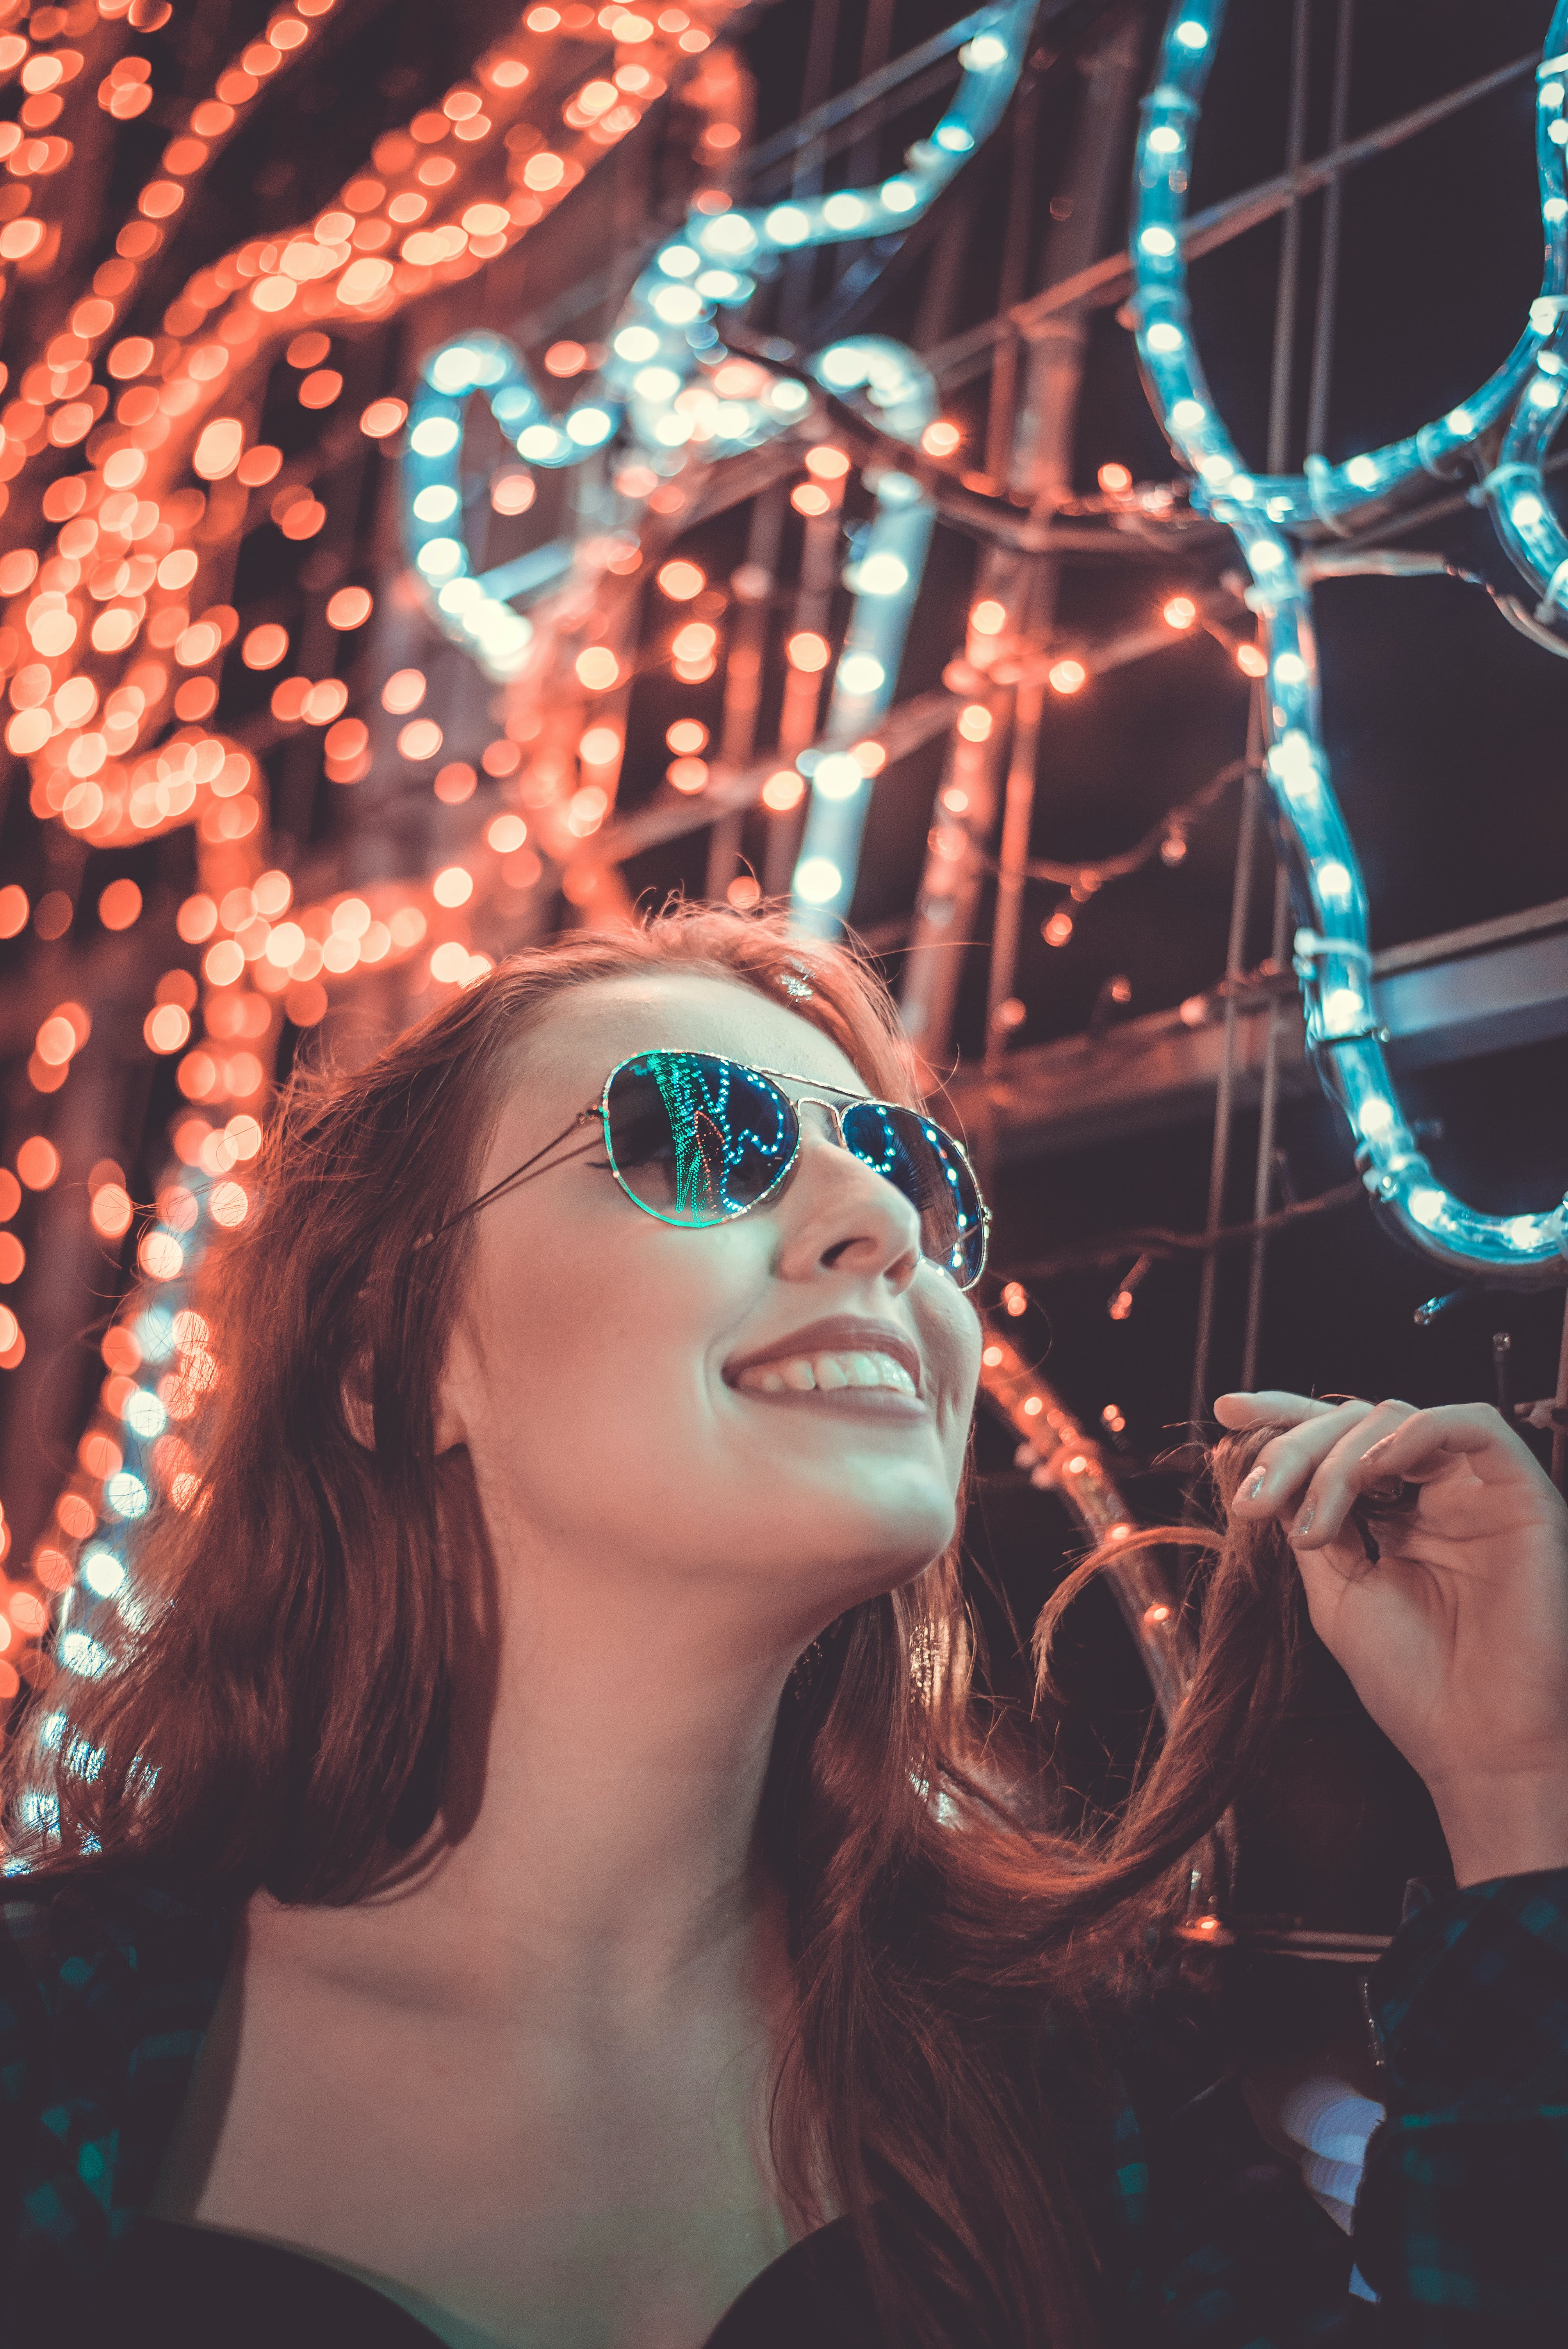 Woman Wearing Sunglasses Holding Her Hair